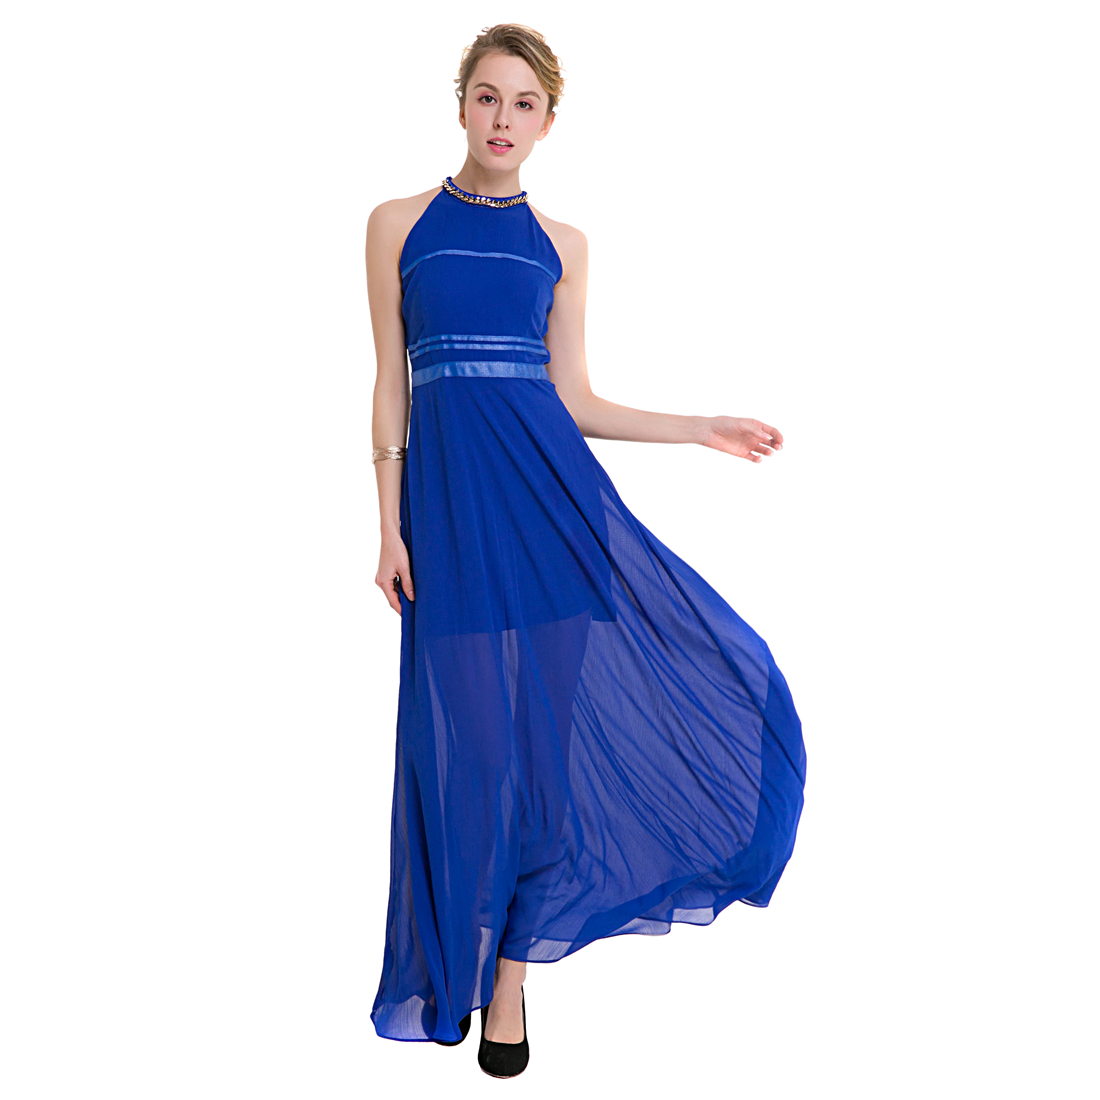 TFGS Original Design Women Elegant Long Chiffon Dress Women Halter Off Shoulder Party Dress Sexy Dresses